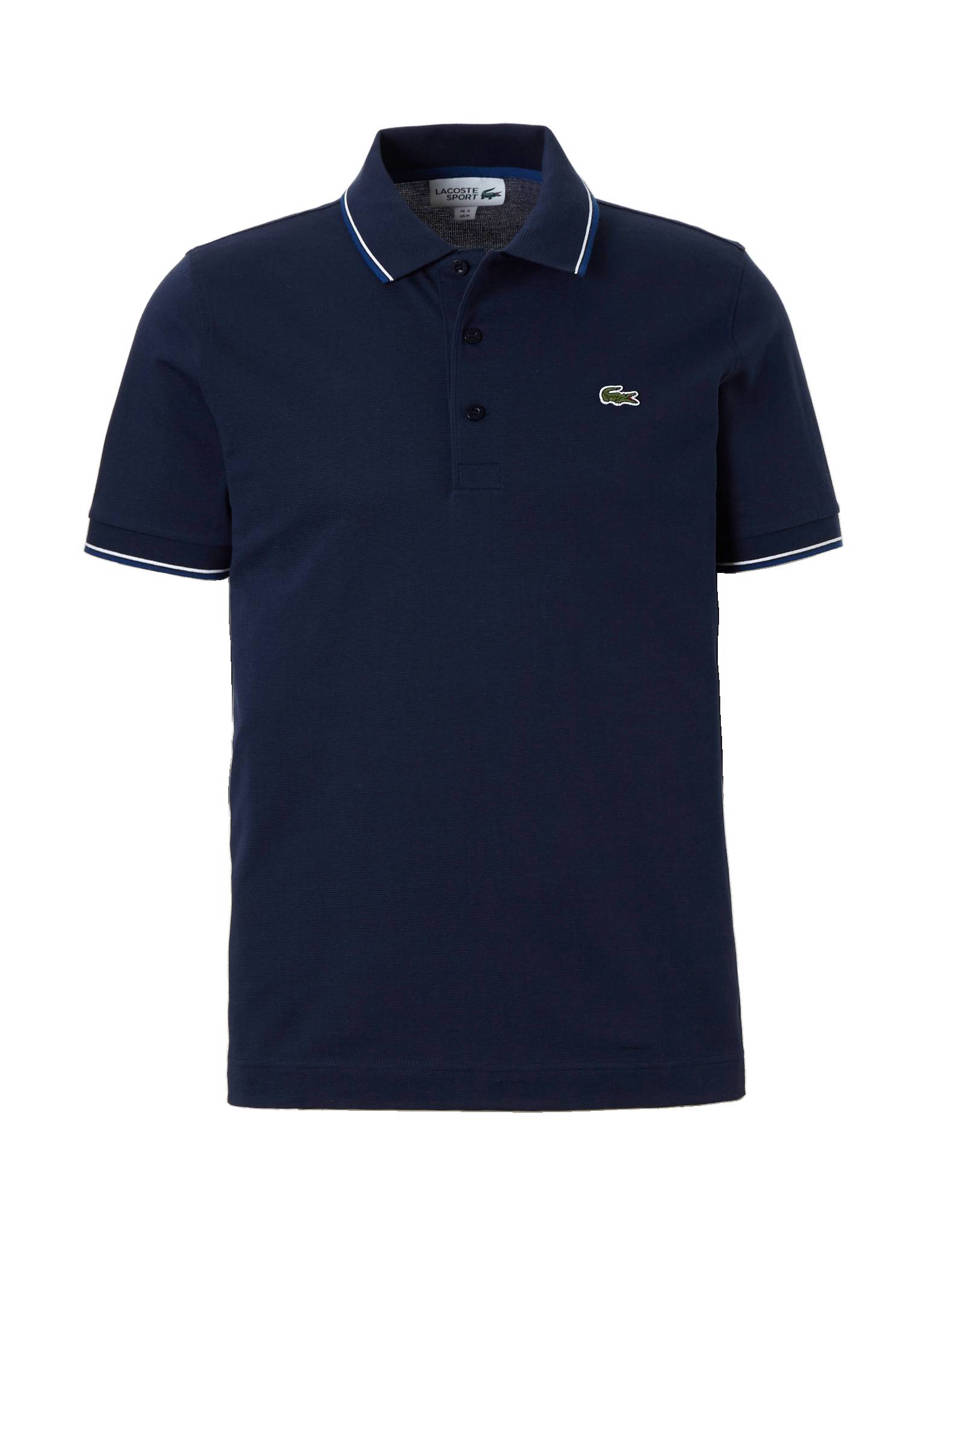 Lacoste classic fit polo, Donkerblauw